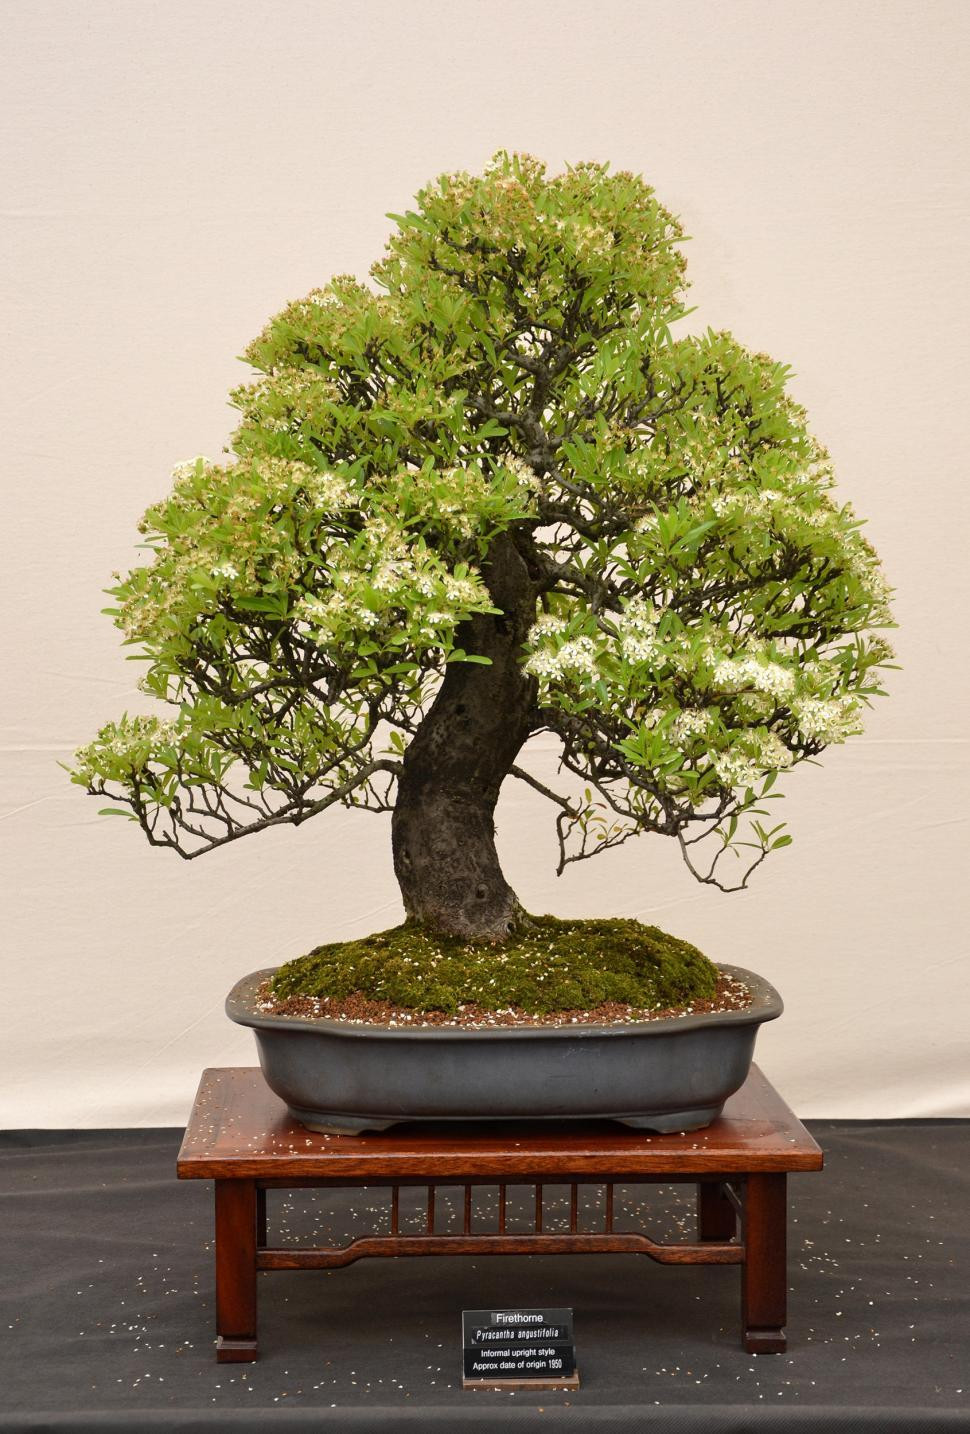 Download Free Stock Photo of Firethorn bonsai